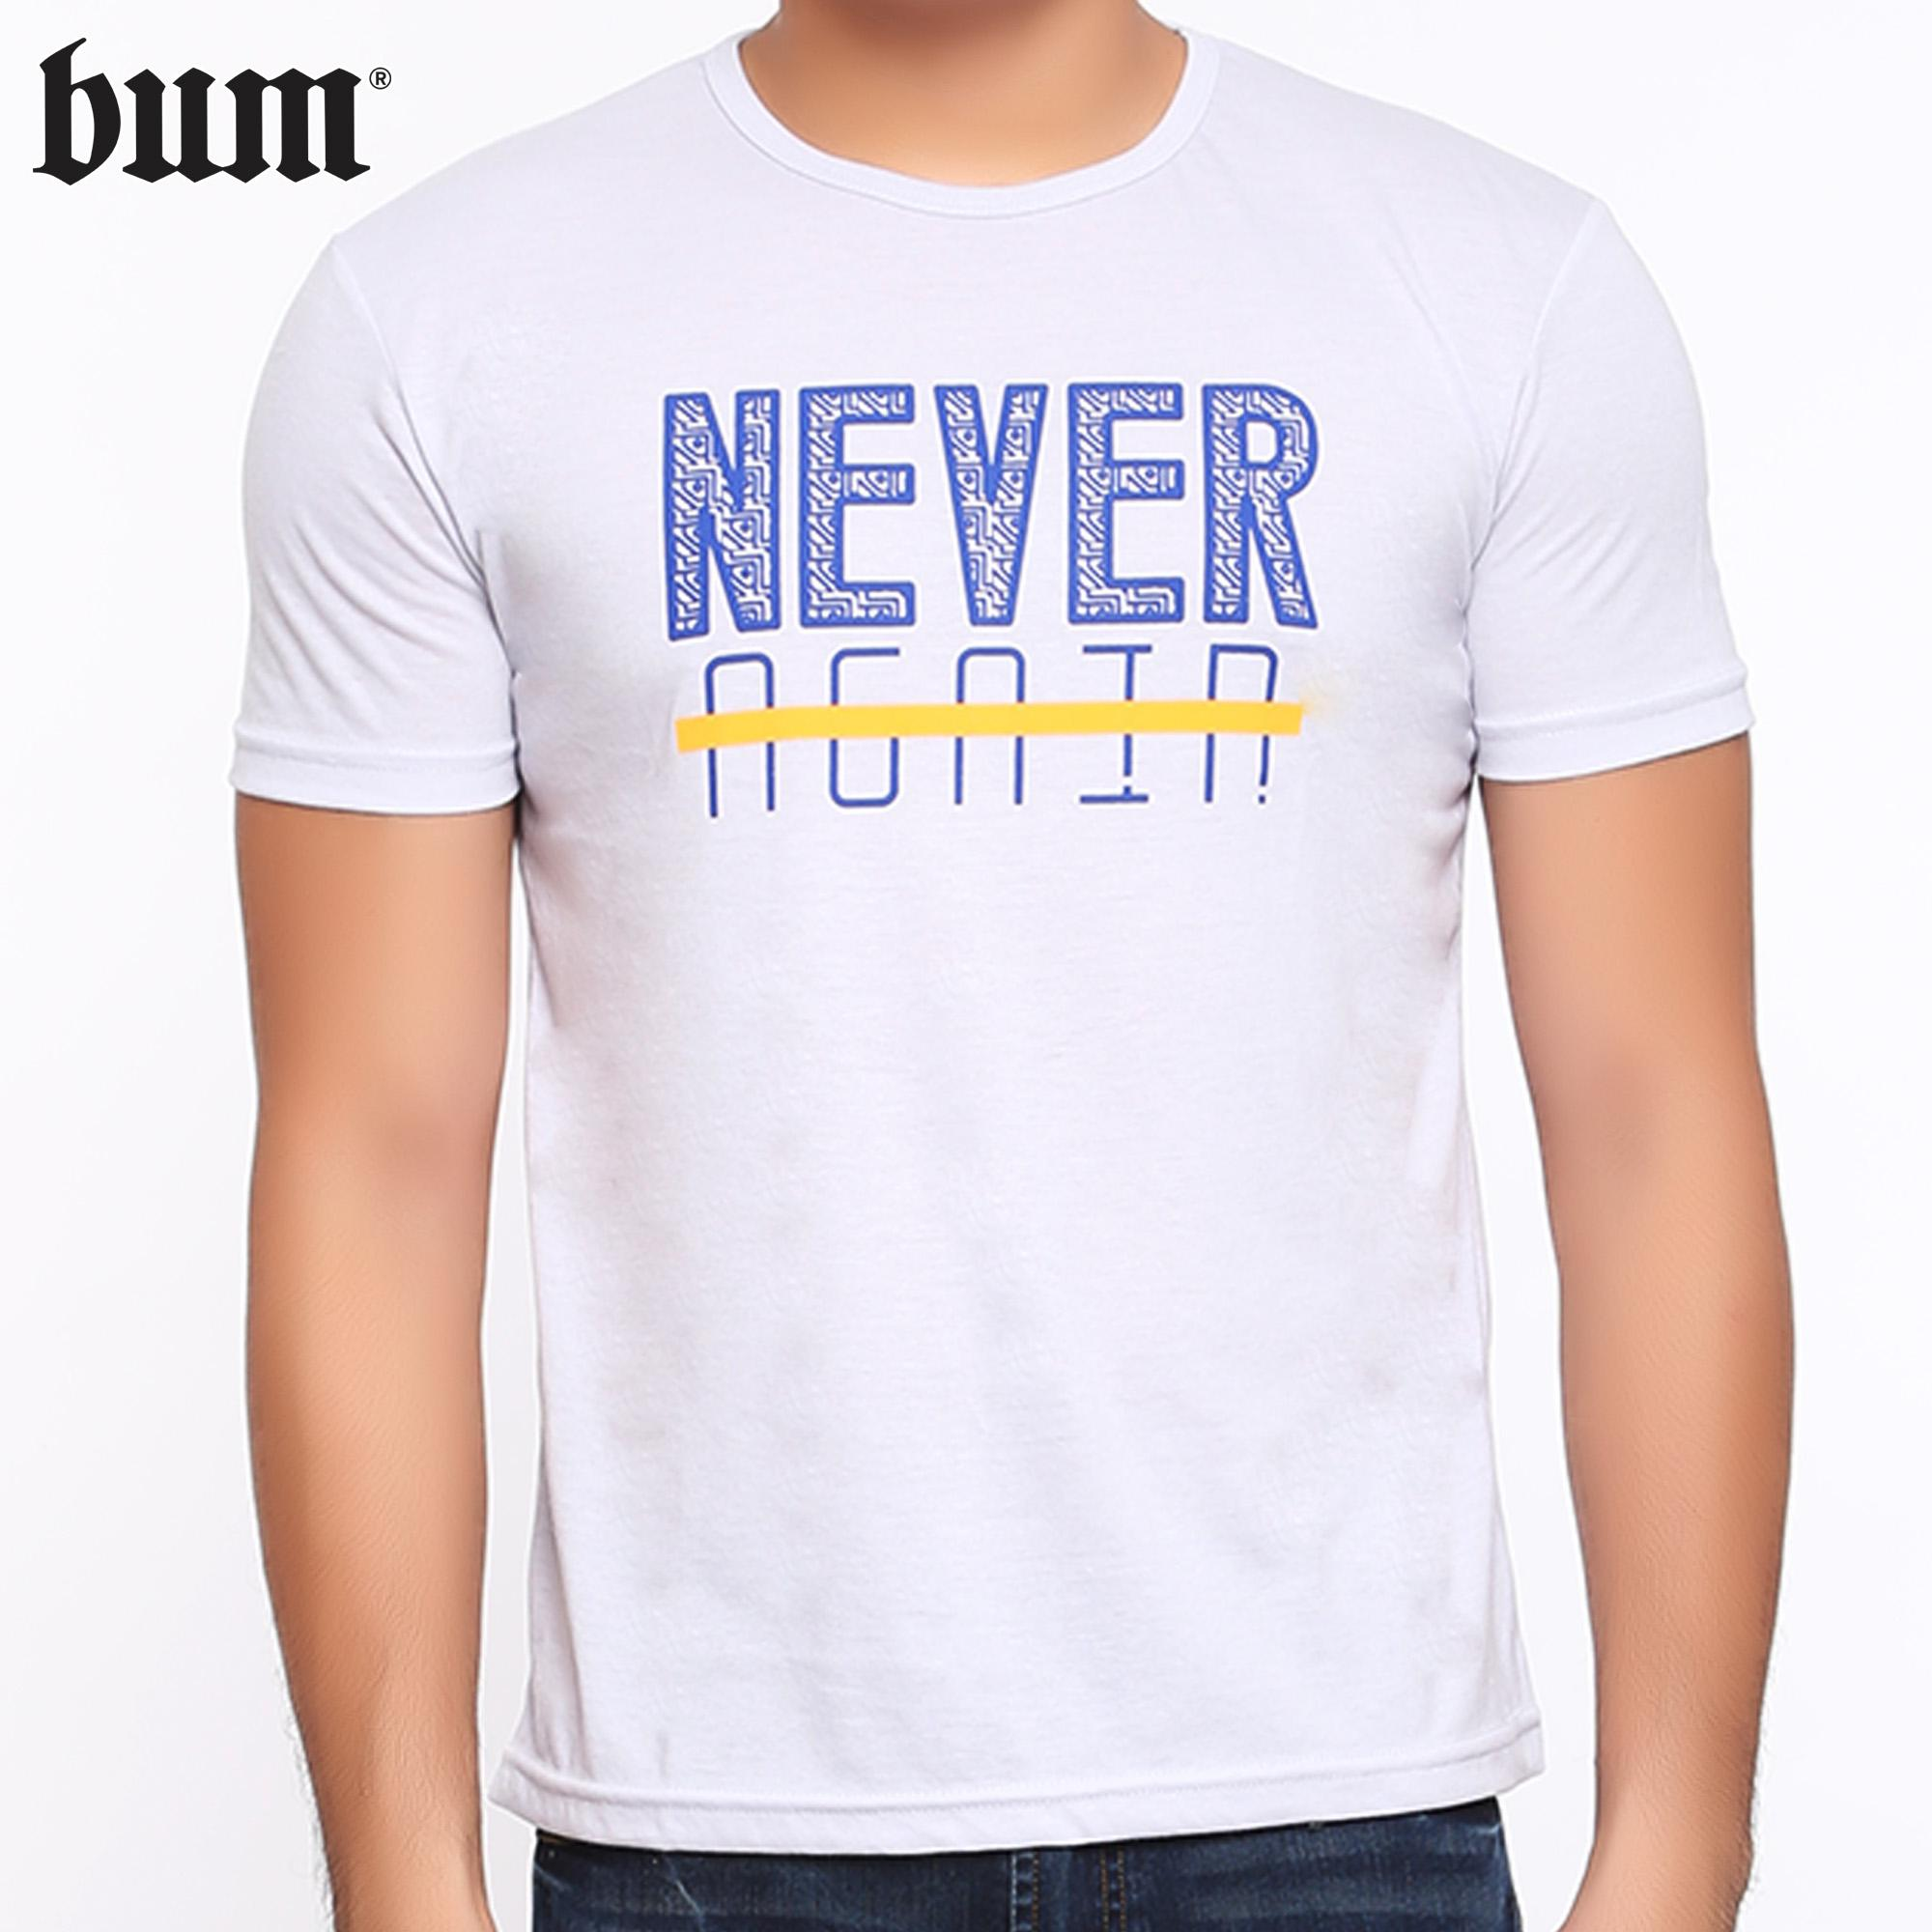 Fashion brands of mens shirts in different price segments